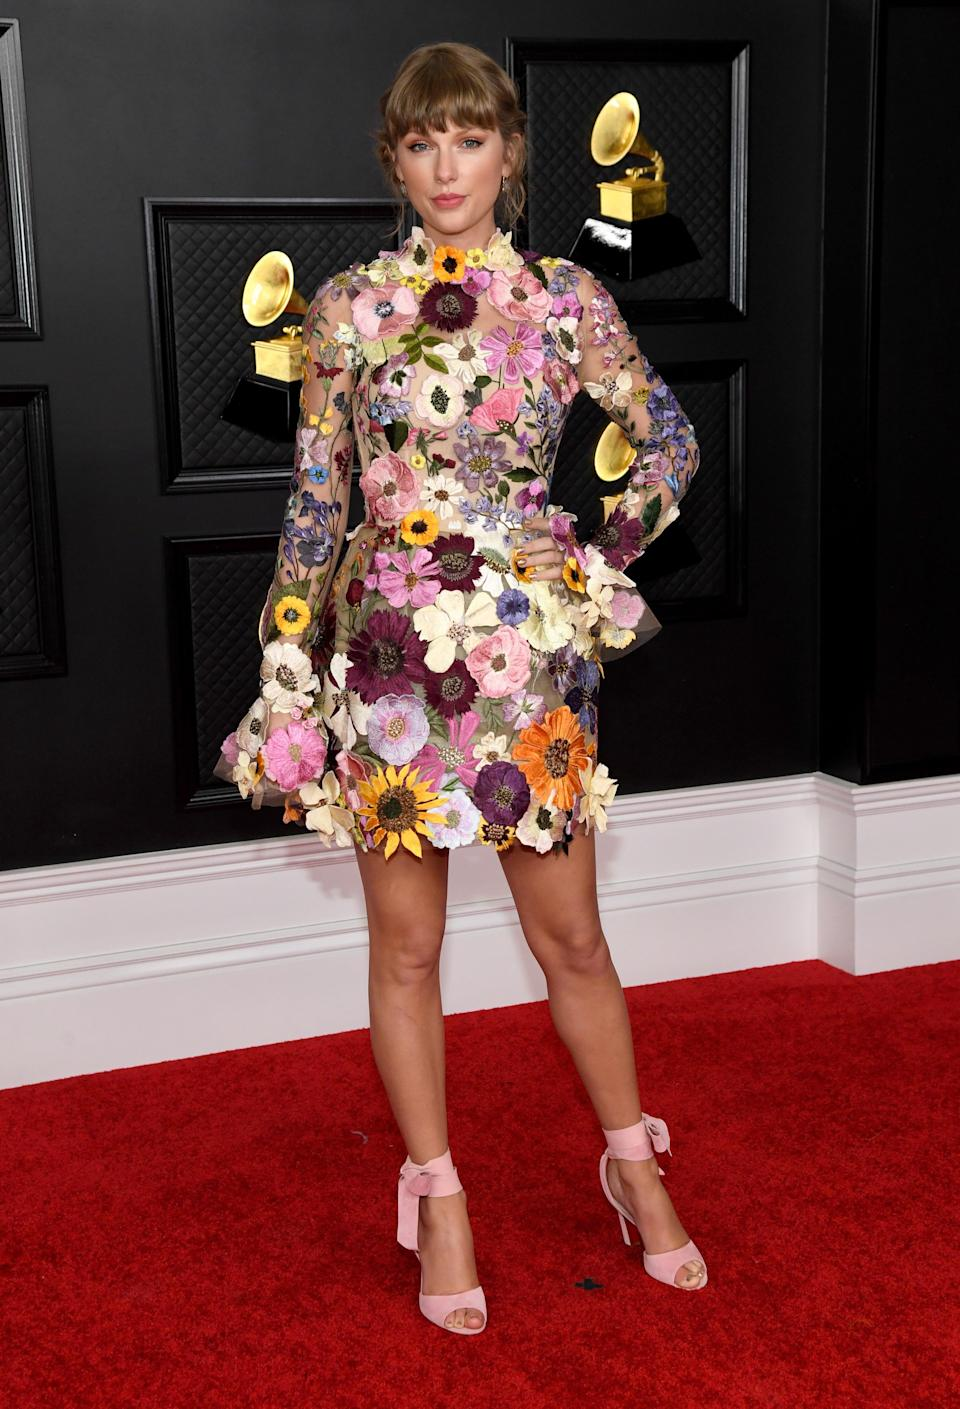 """<h2>Taylor Swift in Oscar de la Renta</h2>Taylor Swift took a break from her <em>folklore</em> prairie dresses and cardigans for the Grammys, choosing, instead, a flower-power mini dress from Oscar de la Renta's fall '21 collection. <br><span class=""""copyright"""">Photo: Kevin Mazur/Getty Images.</span>"""